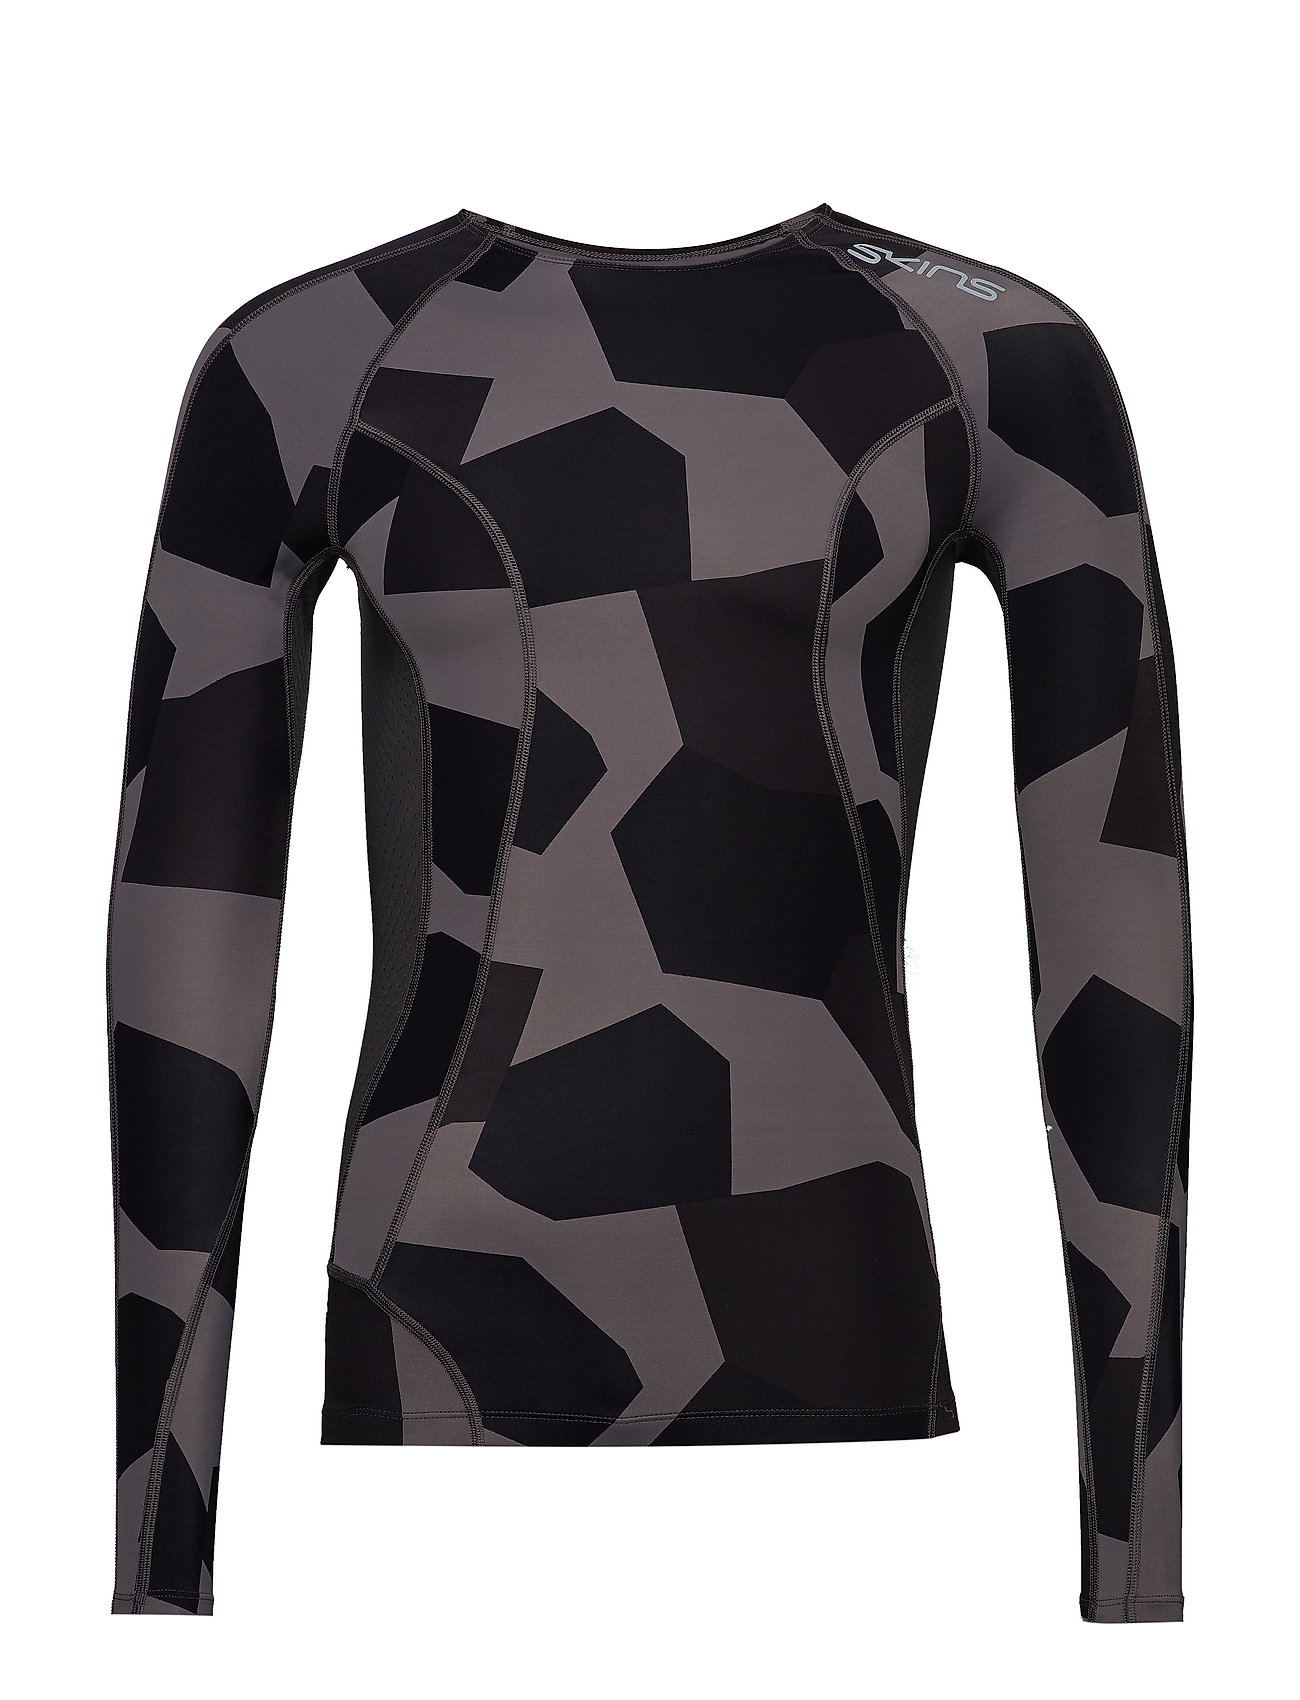 Skins DNAmic Mens L/S Top - SMALL CAMO CHARCHOAL